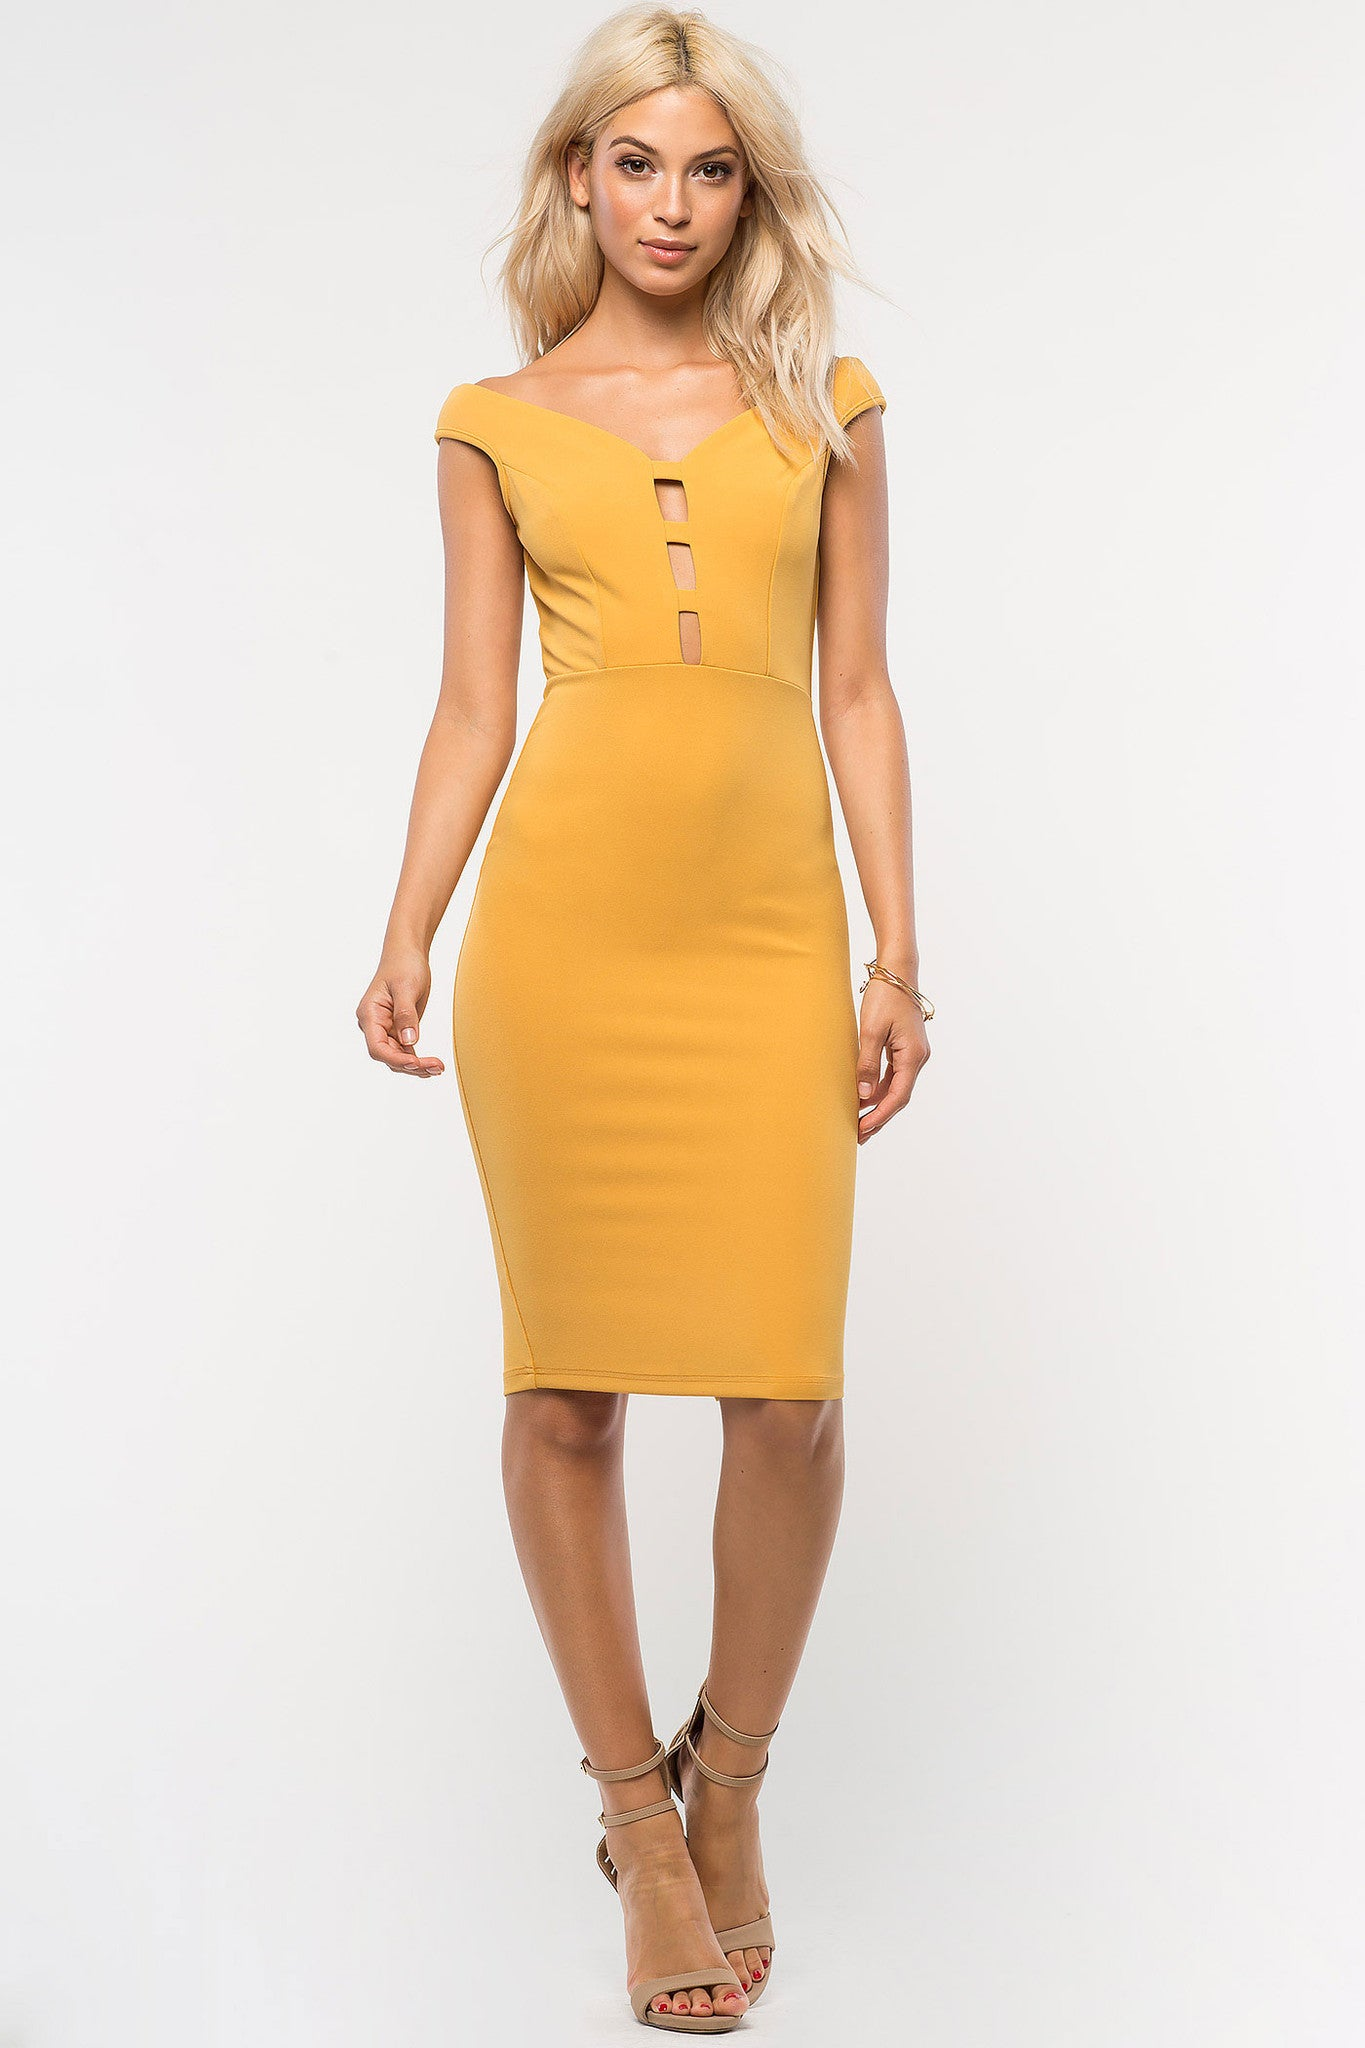 Womens party dress outfits: Off the shoulder cap sleeve bodycon midi party dress in mustard yellow. Front view